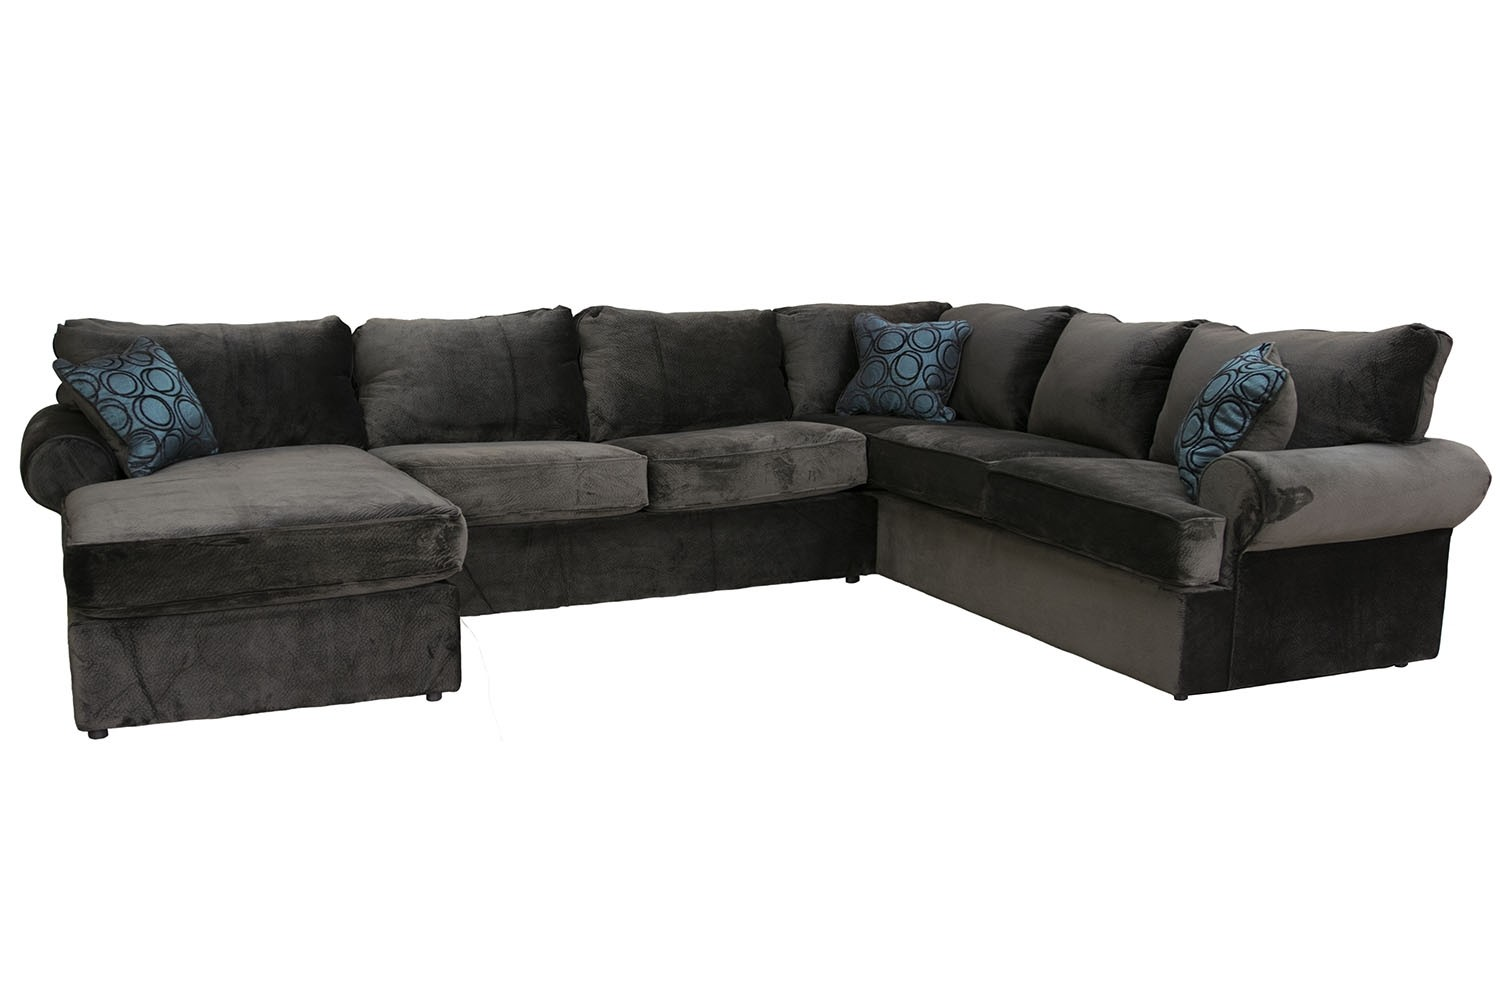 Napa Left Facing Chaise Sectional In Chocolate Media Image 1